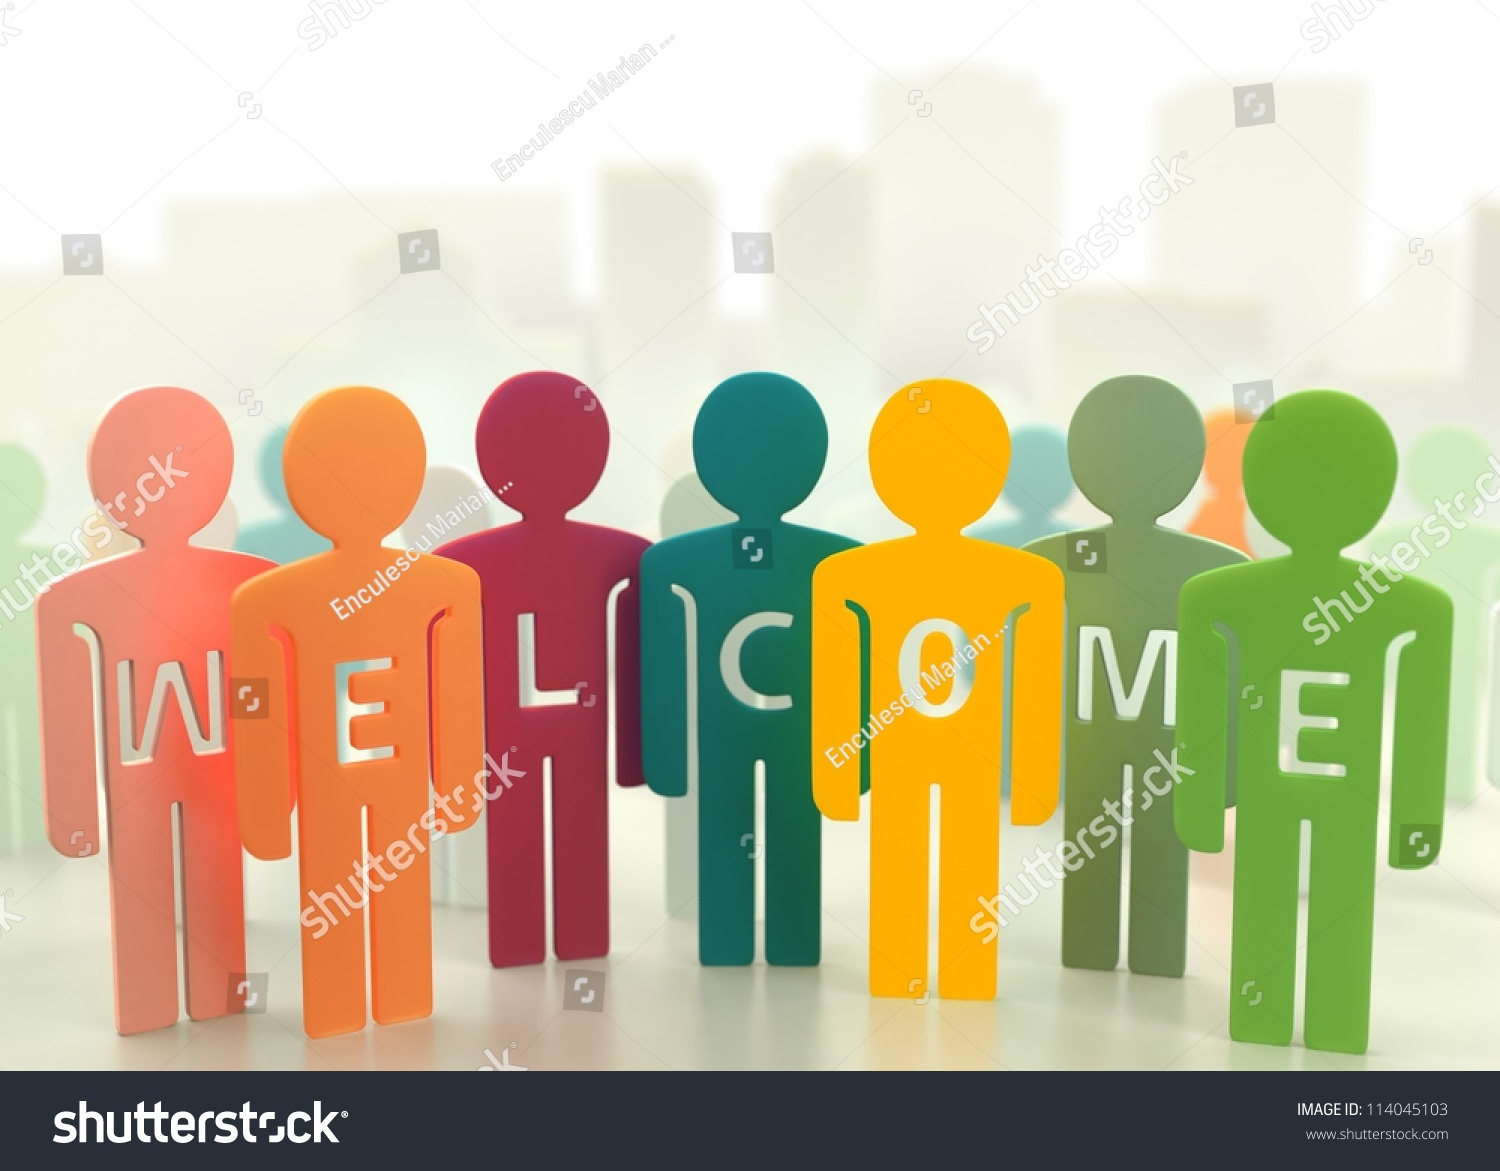 welcome wallpaper stock photo 114045103 shutterstock